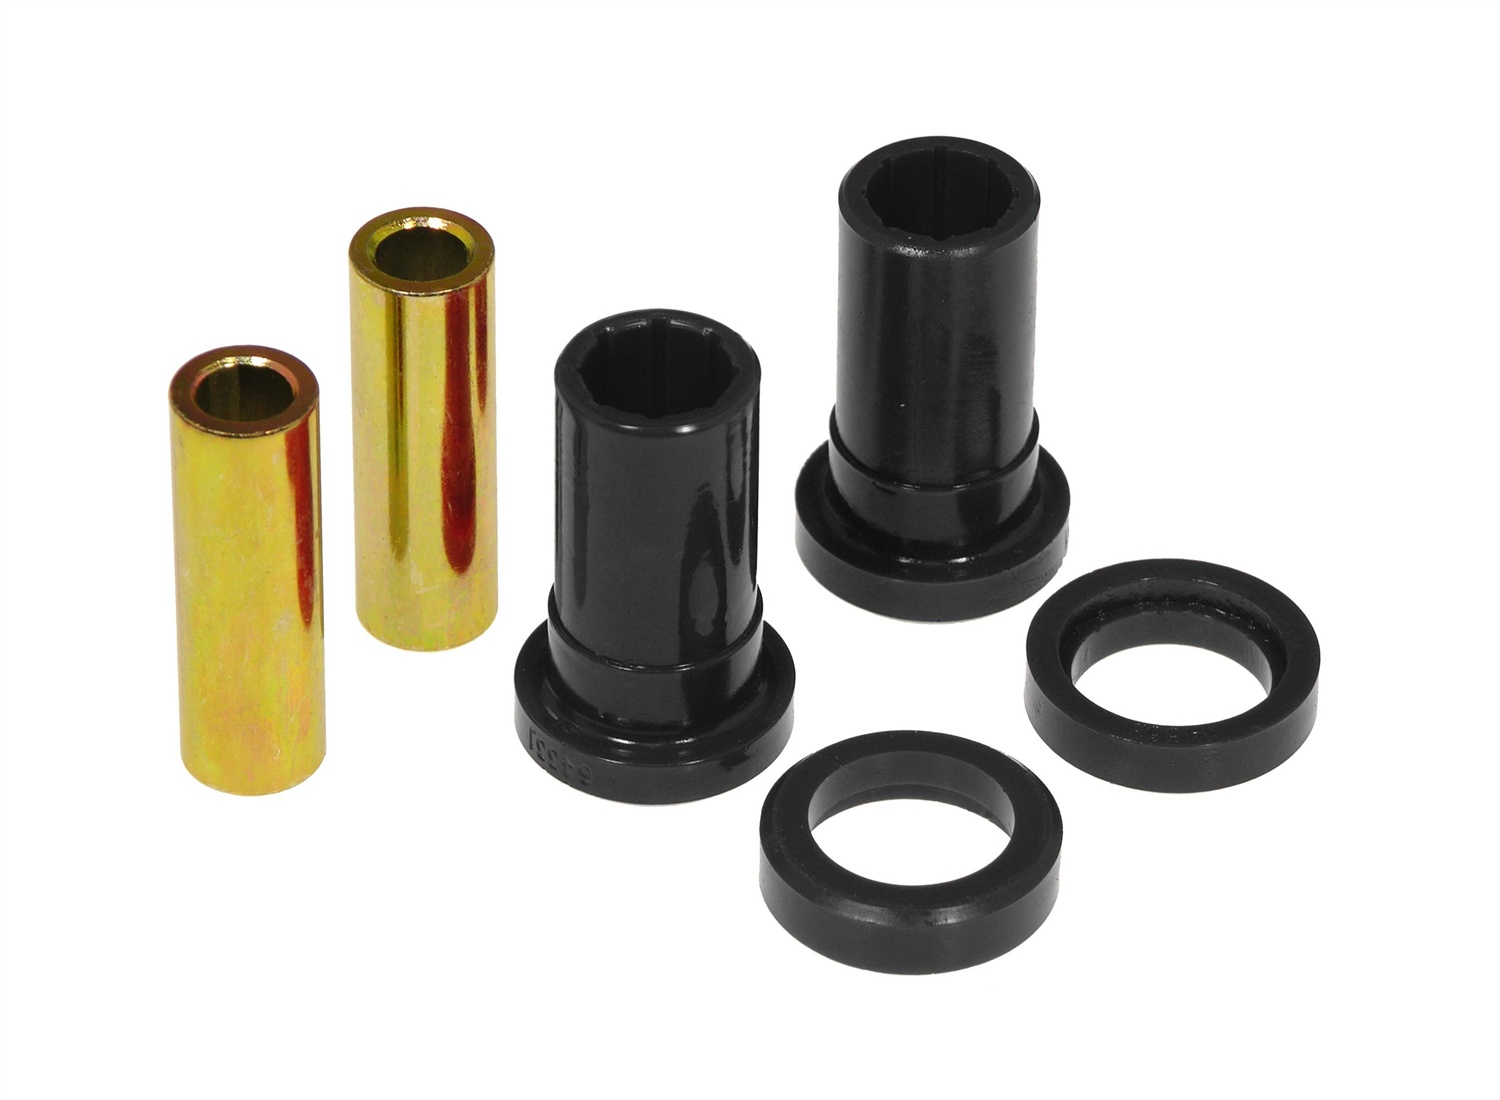 Prothane 18-210-BL Control Arm Bushing Kit Fits 71-85 Celica